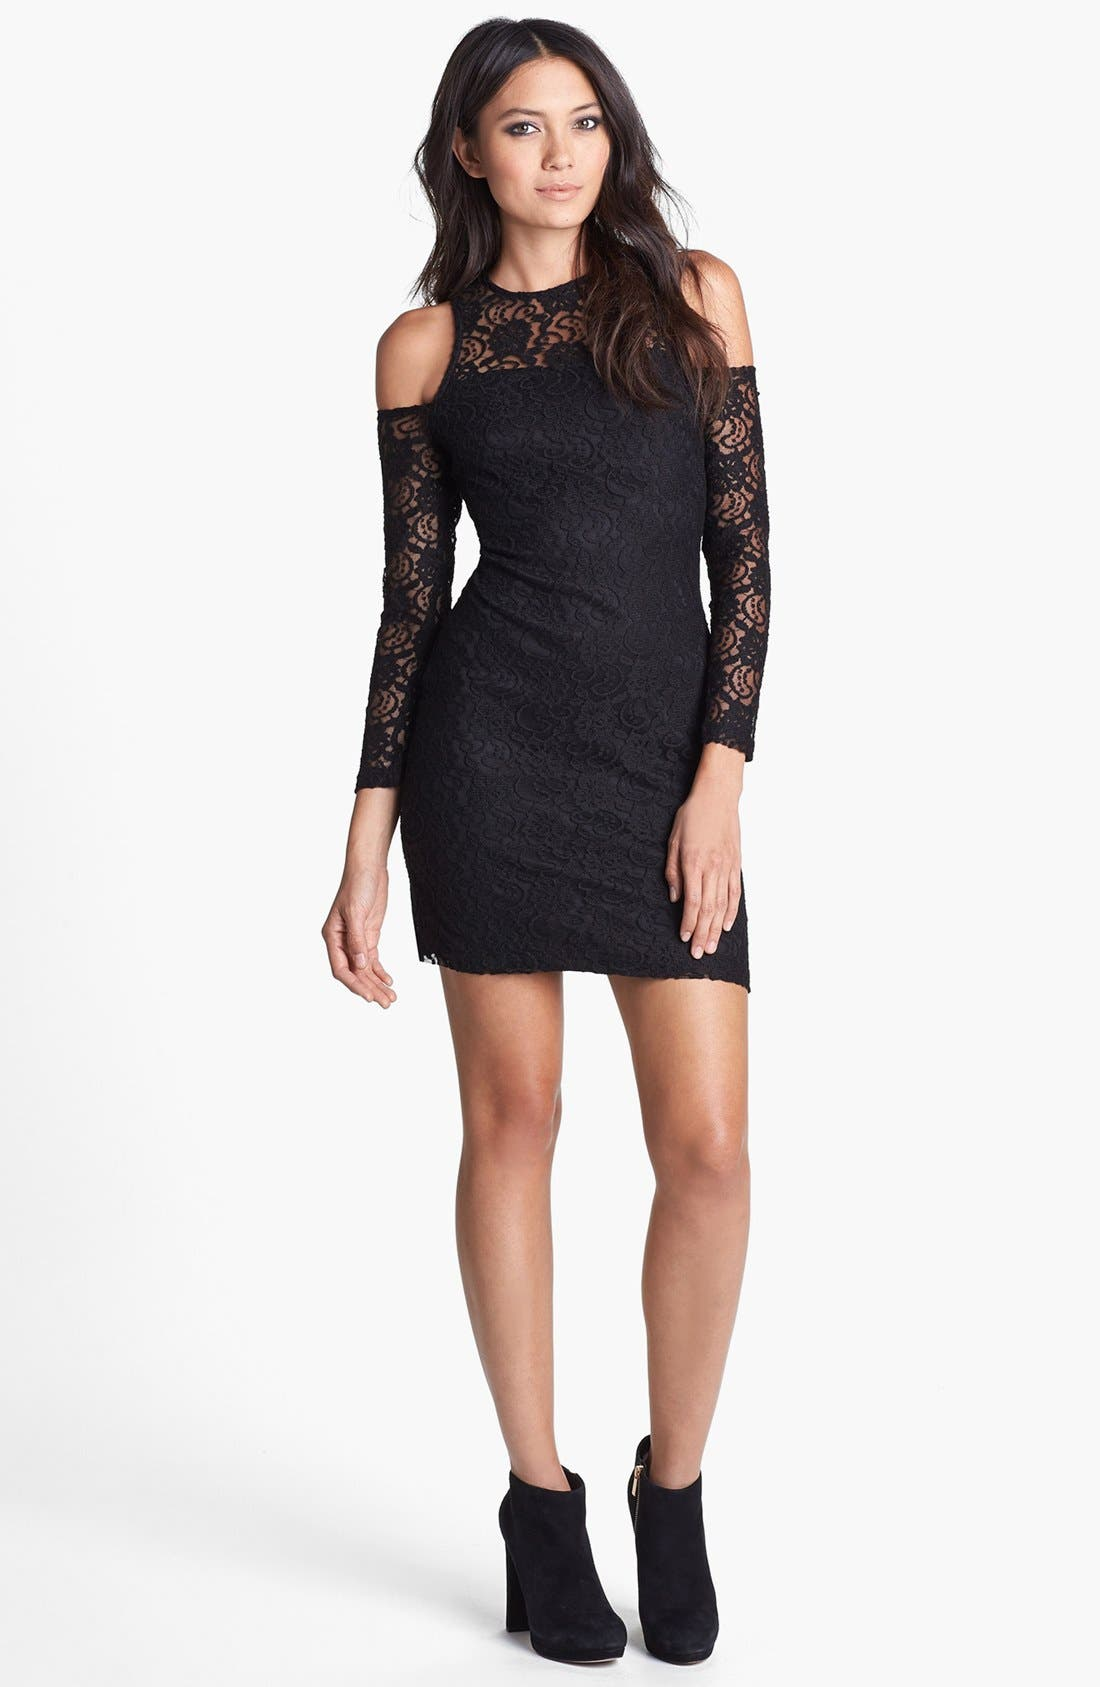 Alternate Image 1 Selected - Glamorous Cold Shoulder Lace Body-Con Dress